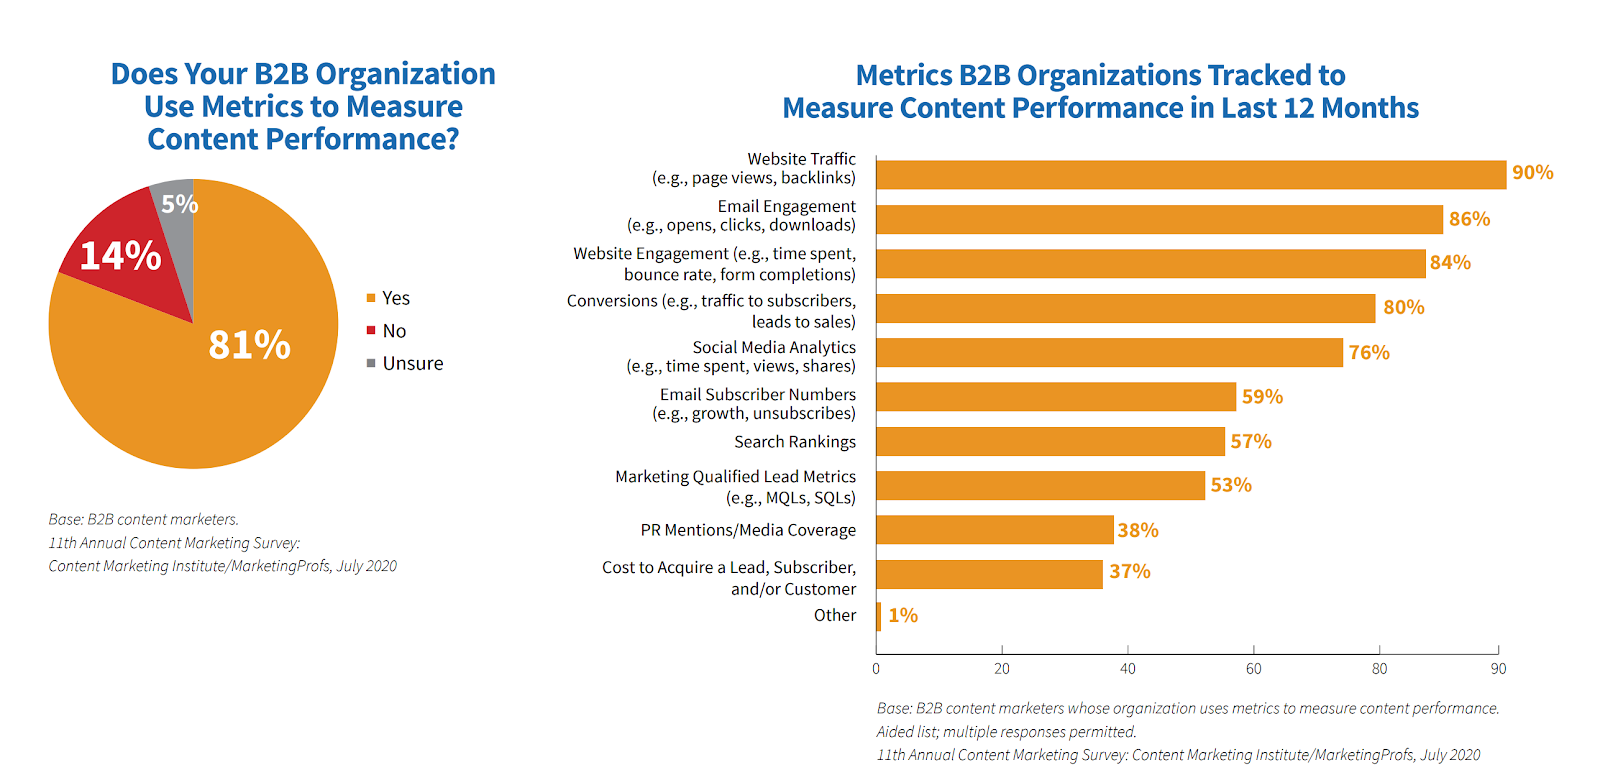 10 B2B Content Marketing Insights To Guide Your 2021 Strategy